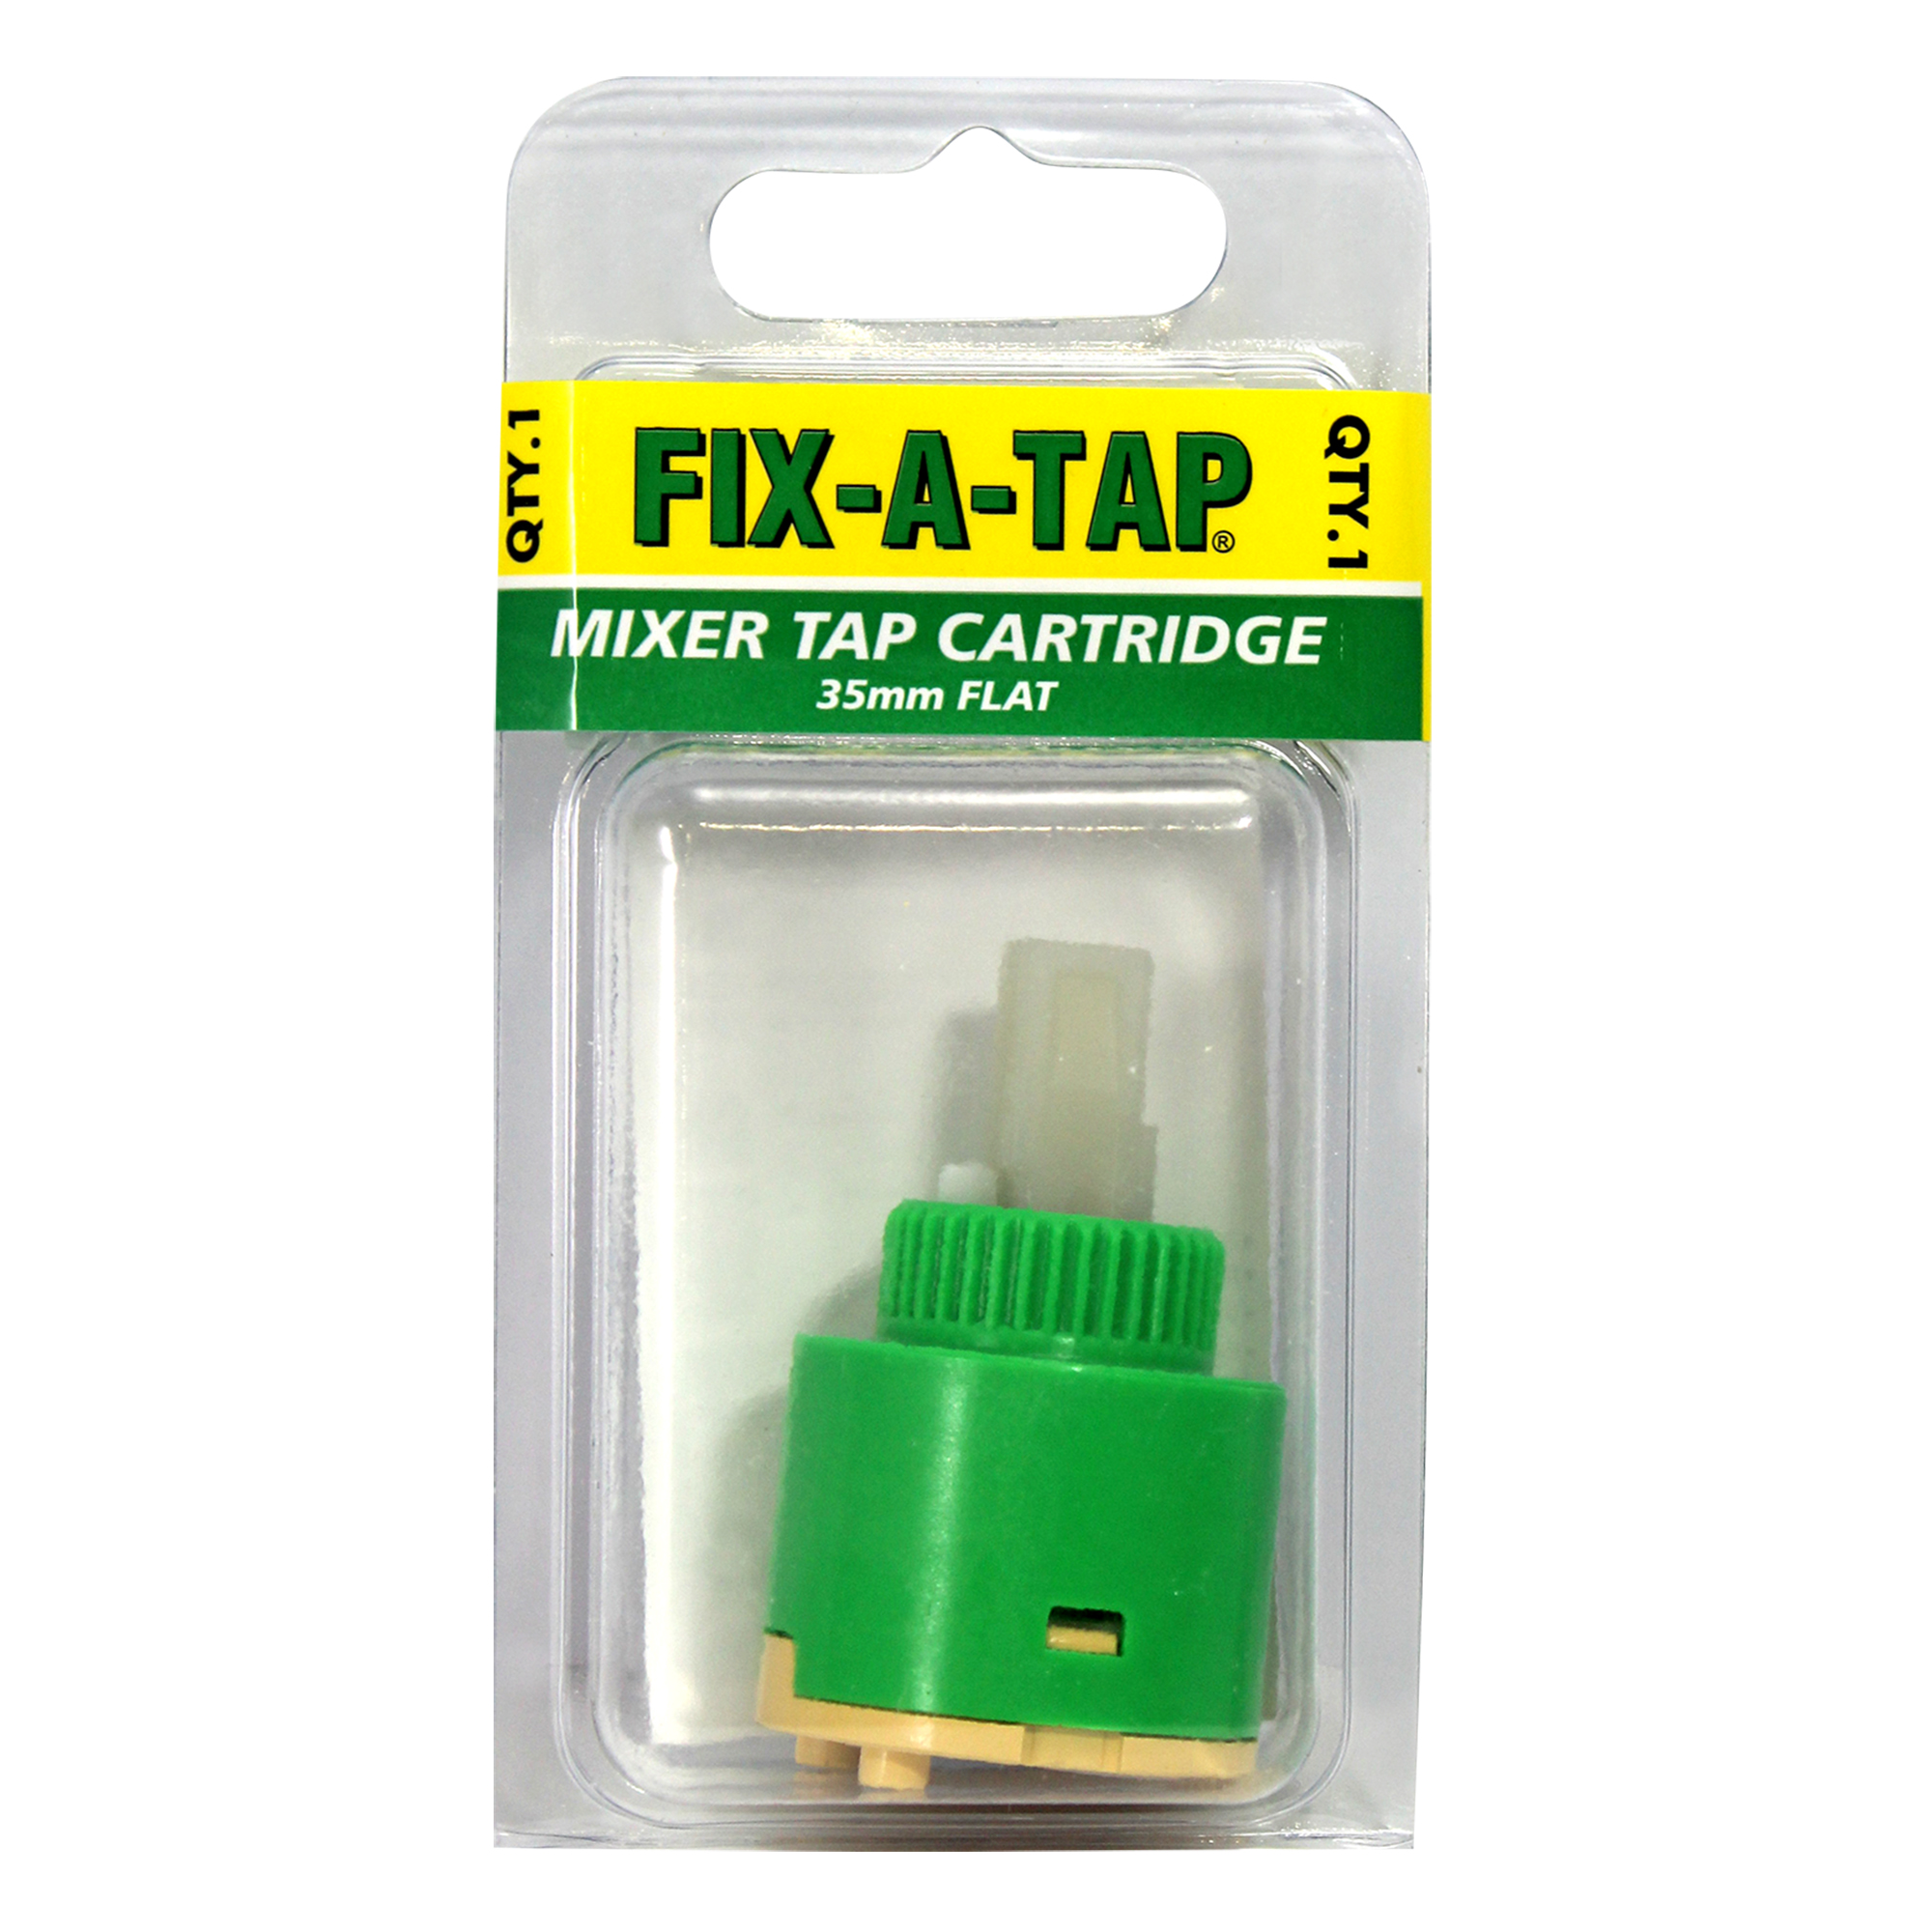 Standard Cartridges - Mixer Tap Cartridges - FIX-A-TAP